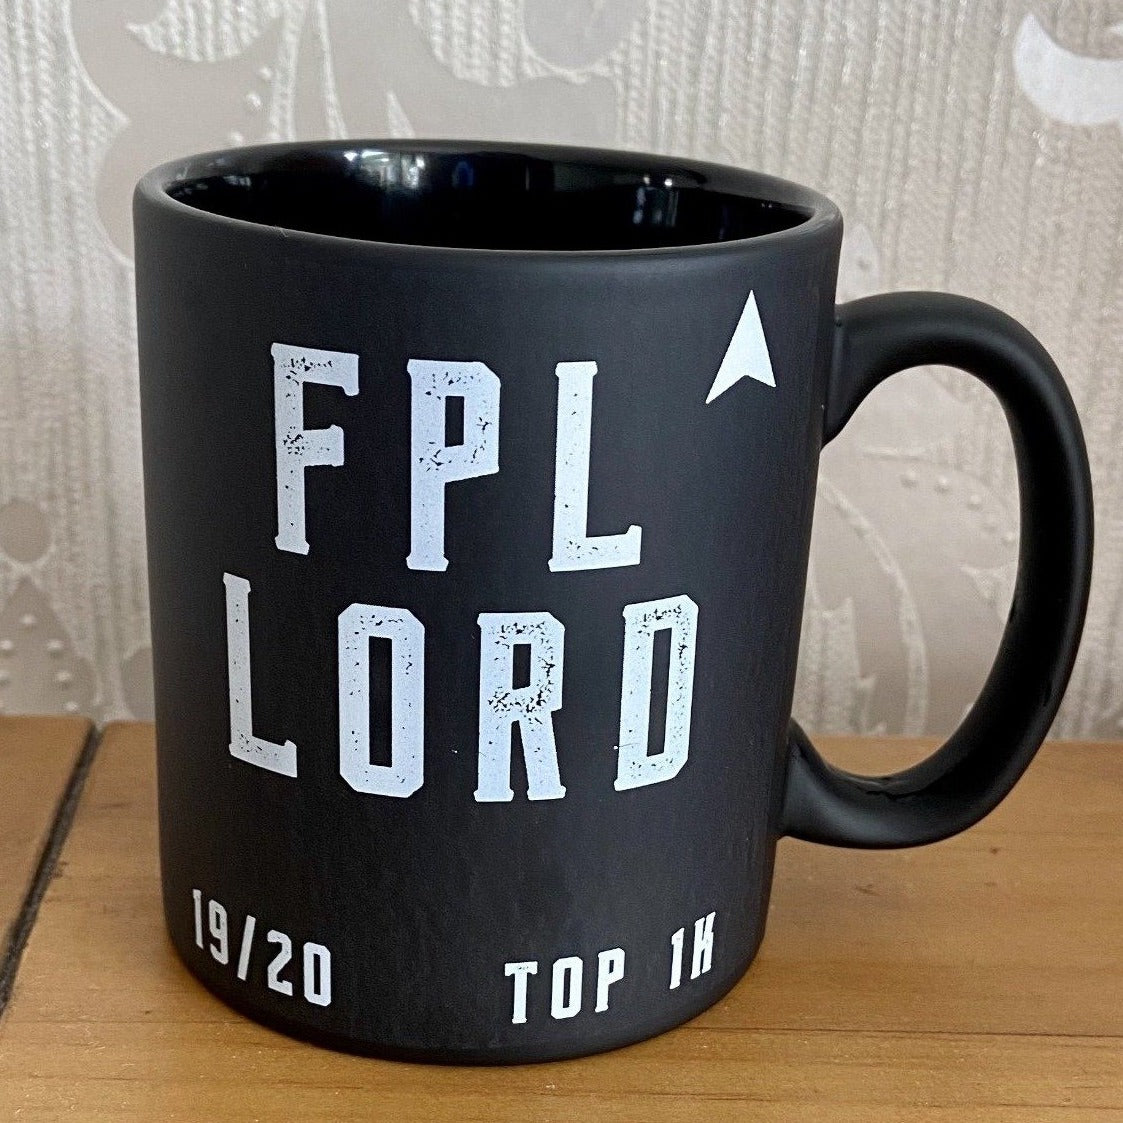 Black 11oz mug custom made for the top 1k in the world in fantasy football